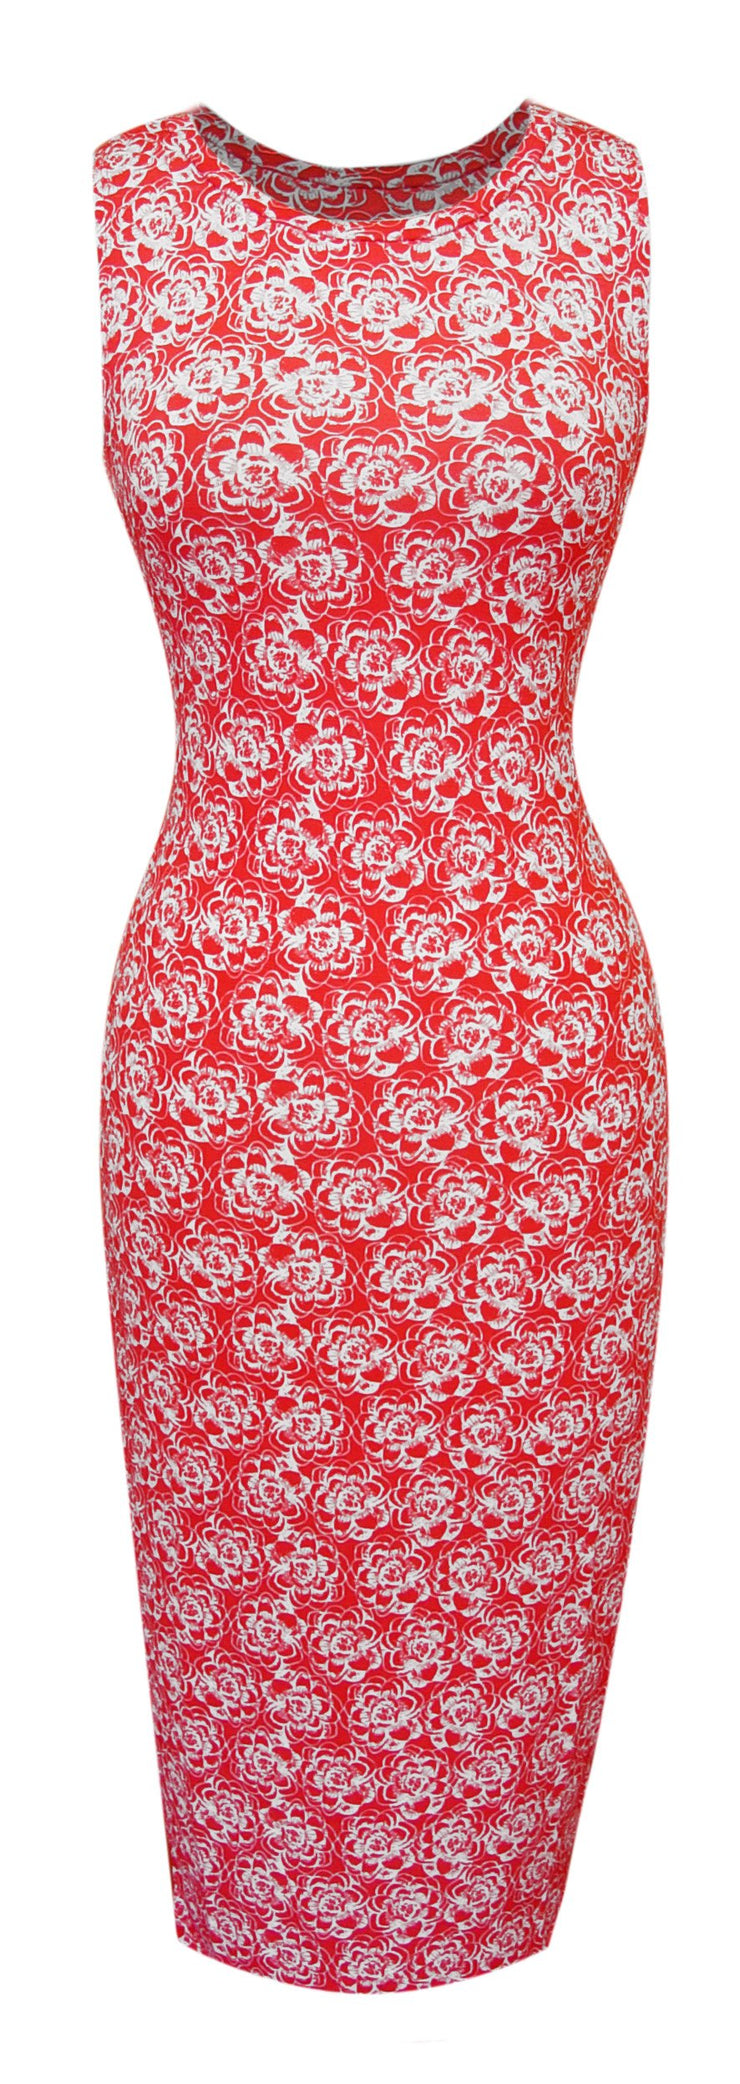 A1591-Floral-BodyconDress-Rose-Sm-JG